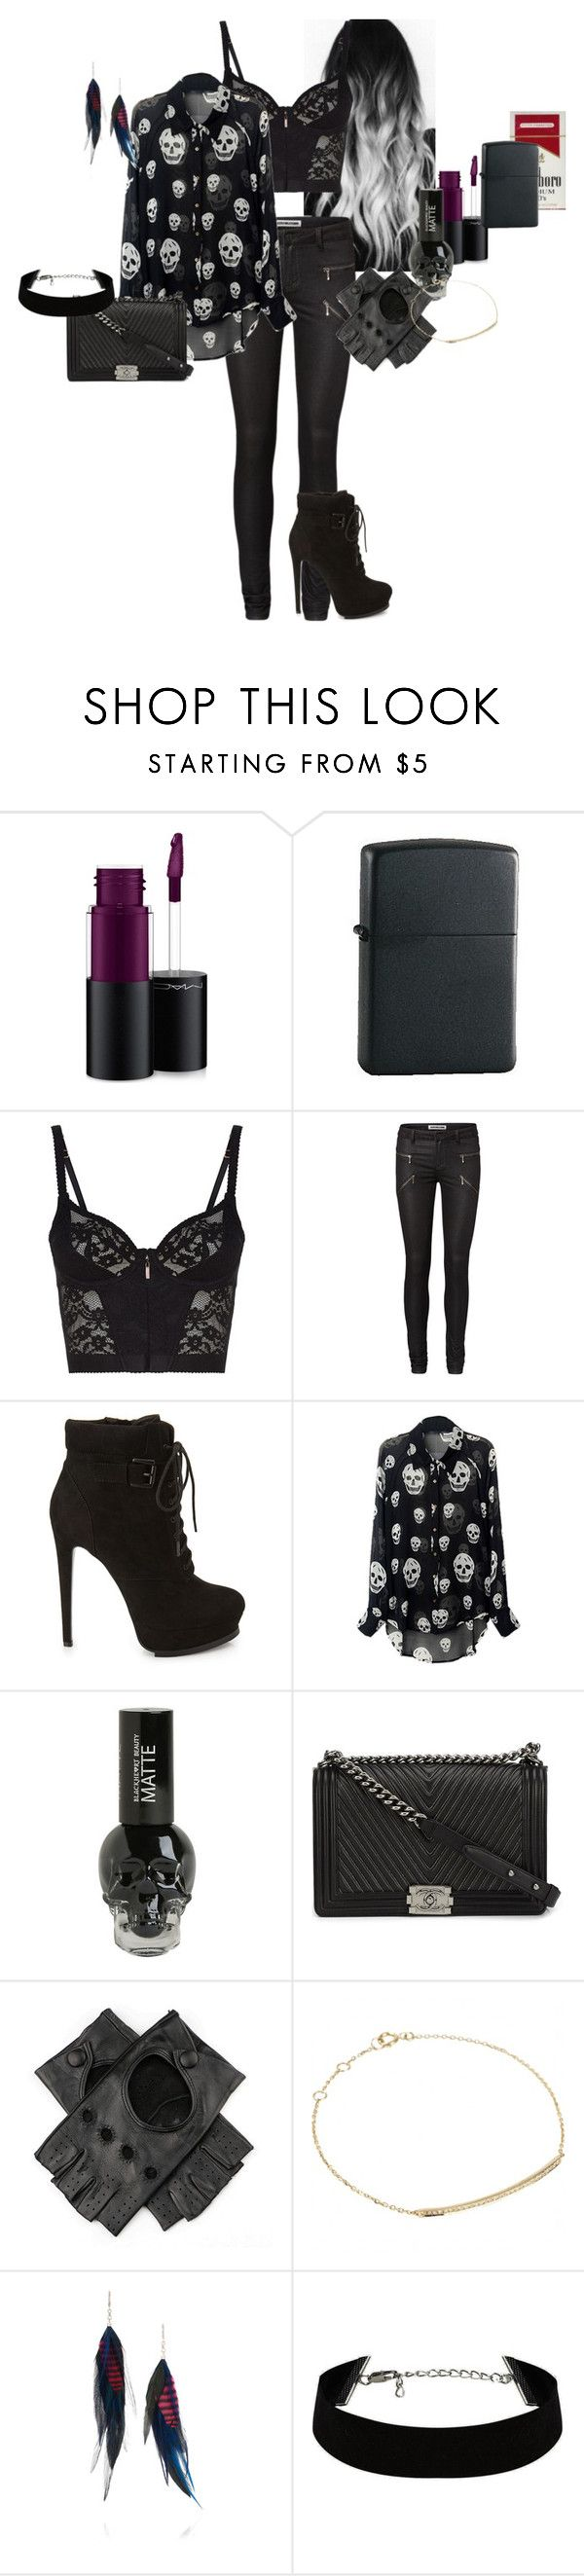 """""""Rosalie 'Lee' Stark - Day with Ash"""" by katlayden ❤ liked on Polyvore featuring MAC Cosmetics, Zippo, Agent Provocateur, Vero Moda, Forever 21, Chanel, Djula and Jeeyun Ha Designs"""